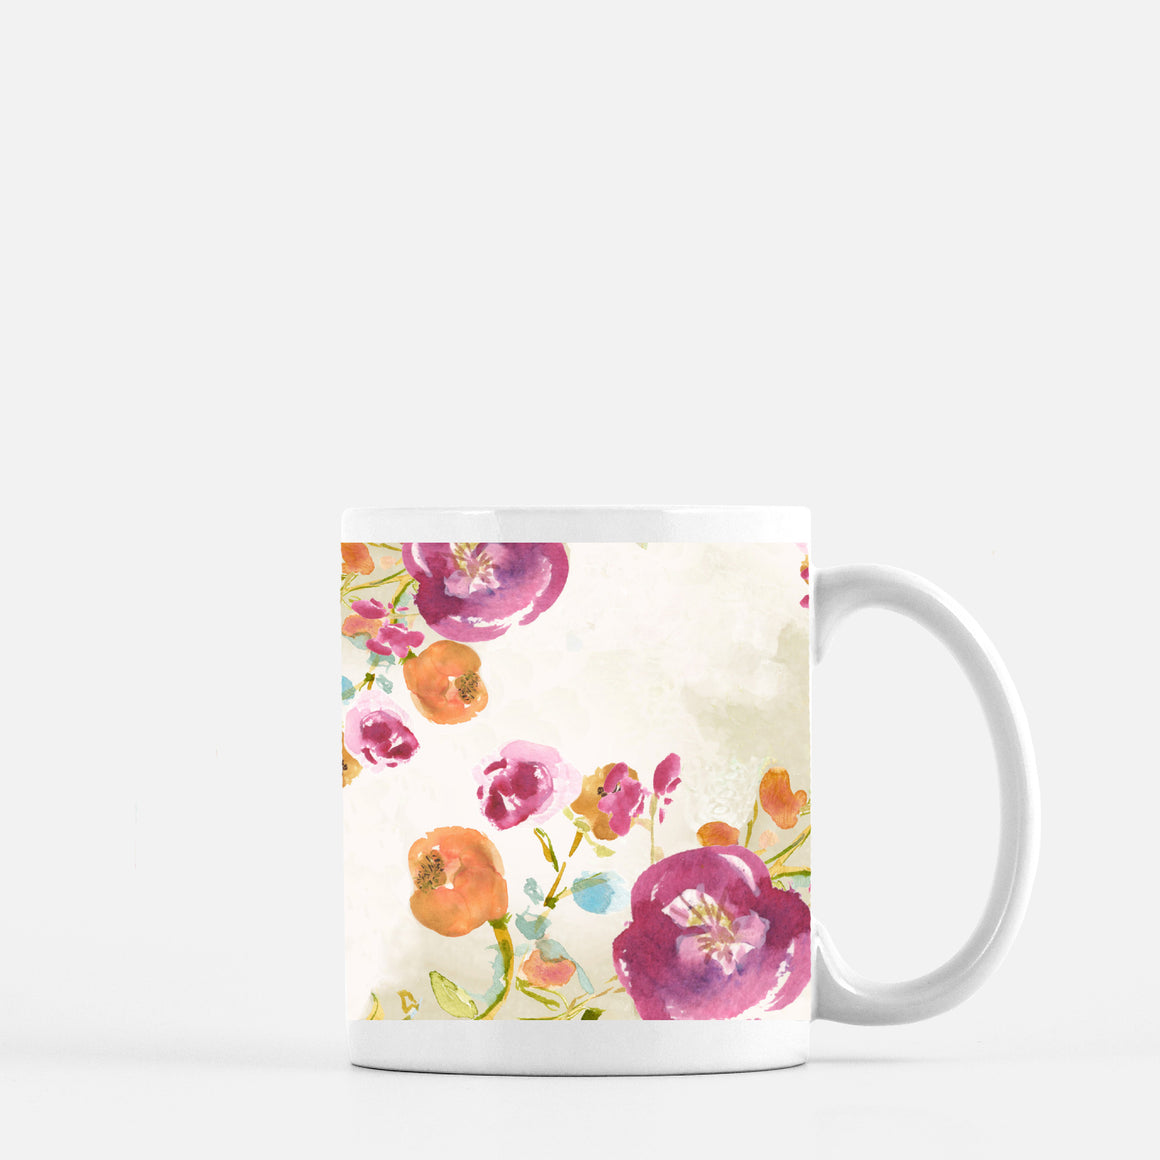 Oh Carolina Floral Ceramic Mug - Dreams After All